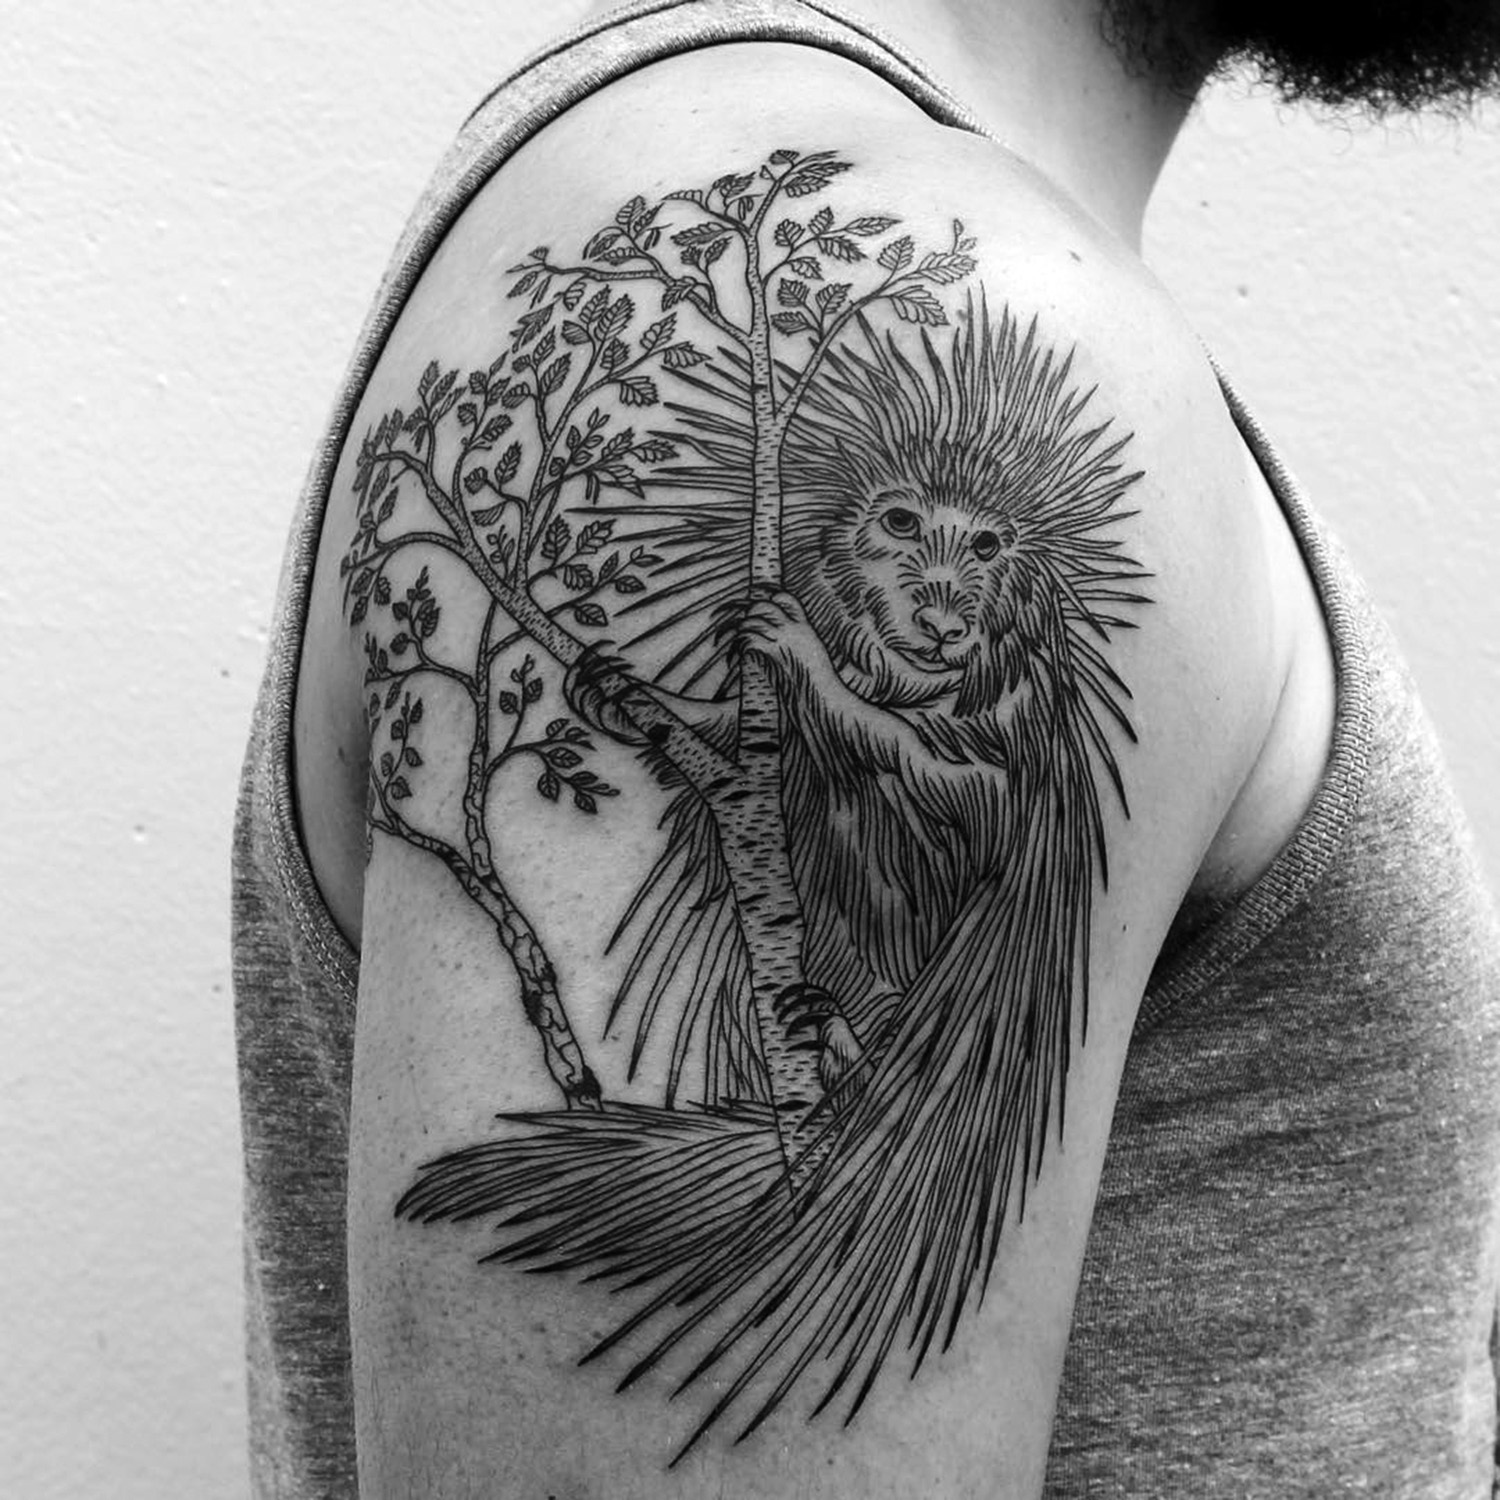 porcupine tattoo on arm